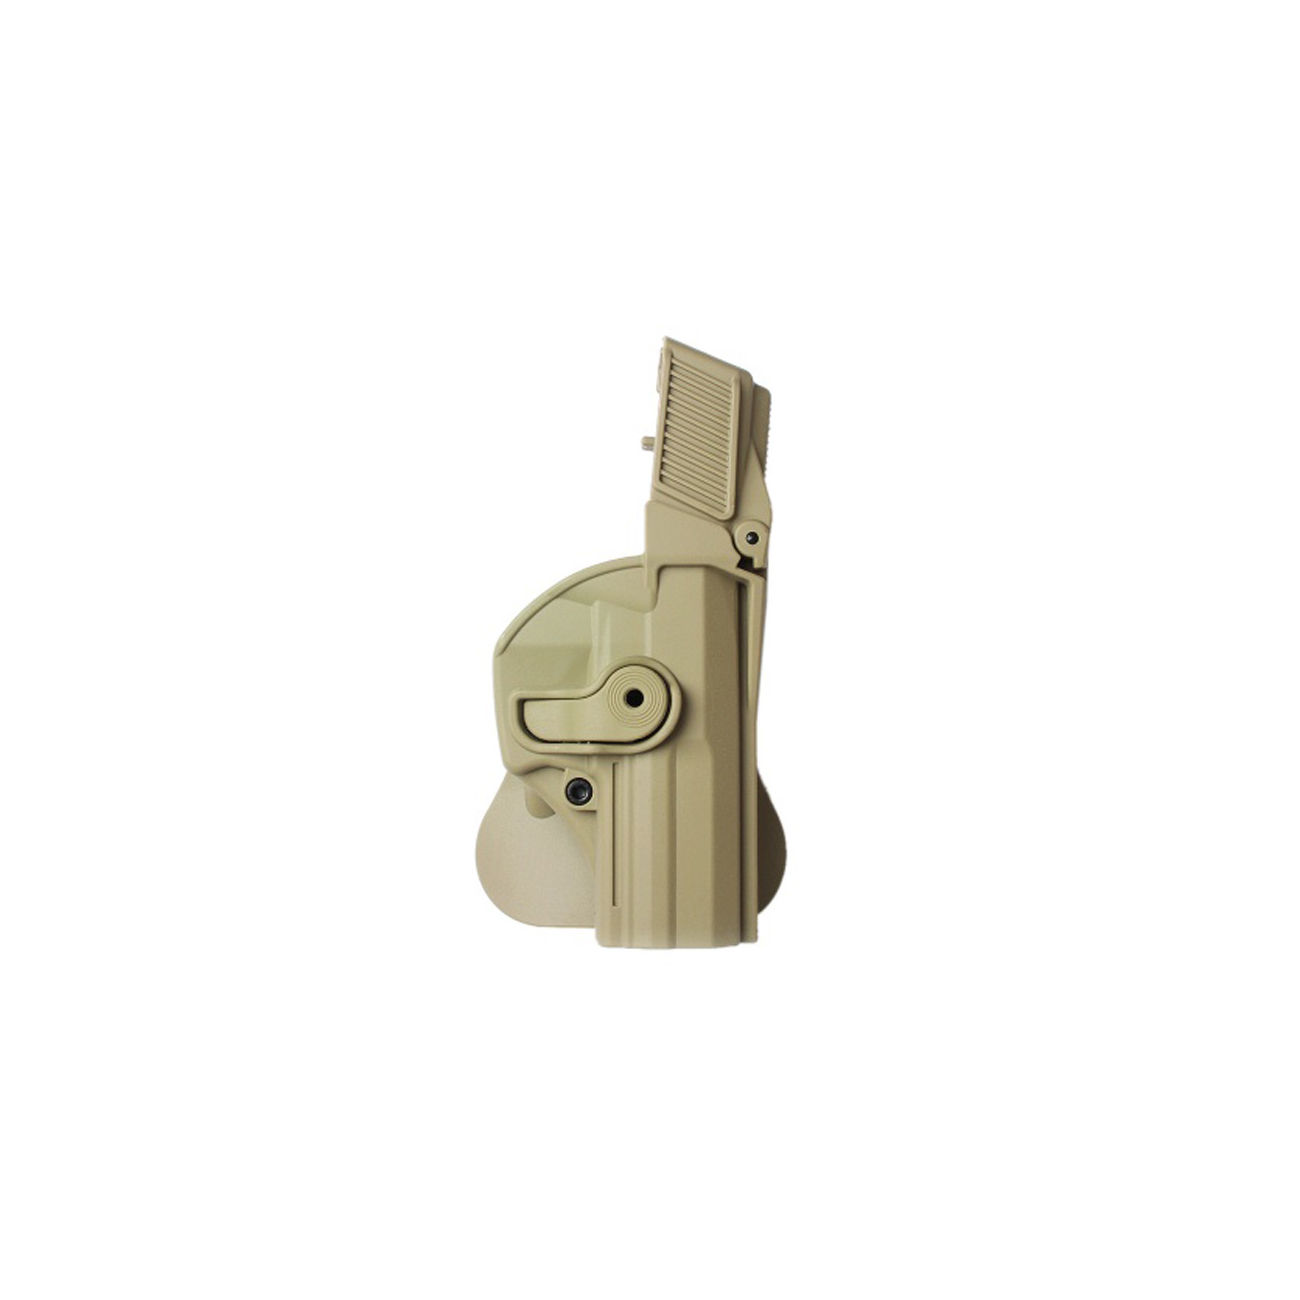 IMI Defense Level 3 Holster Kunststoff Paddle für H&K USP Compact tan 0